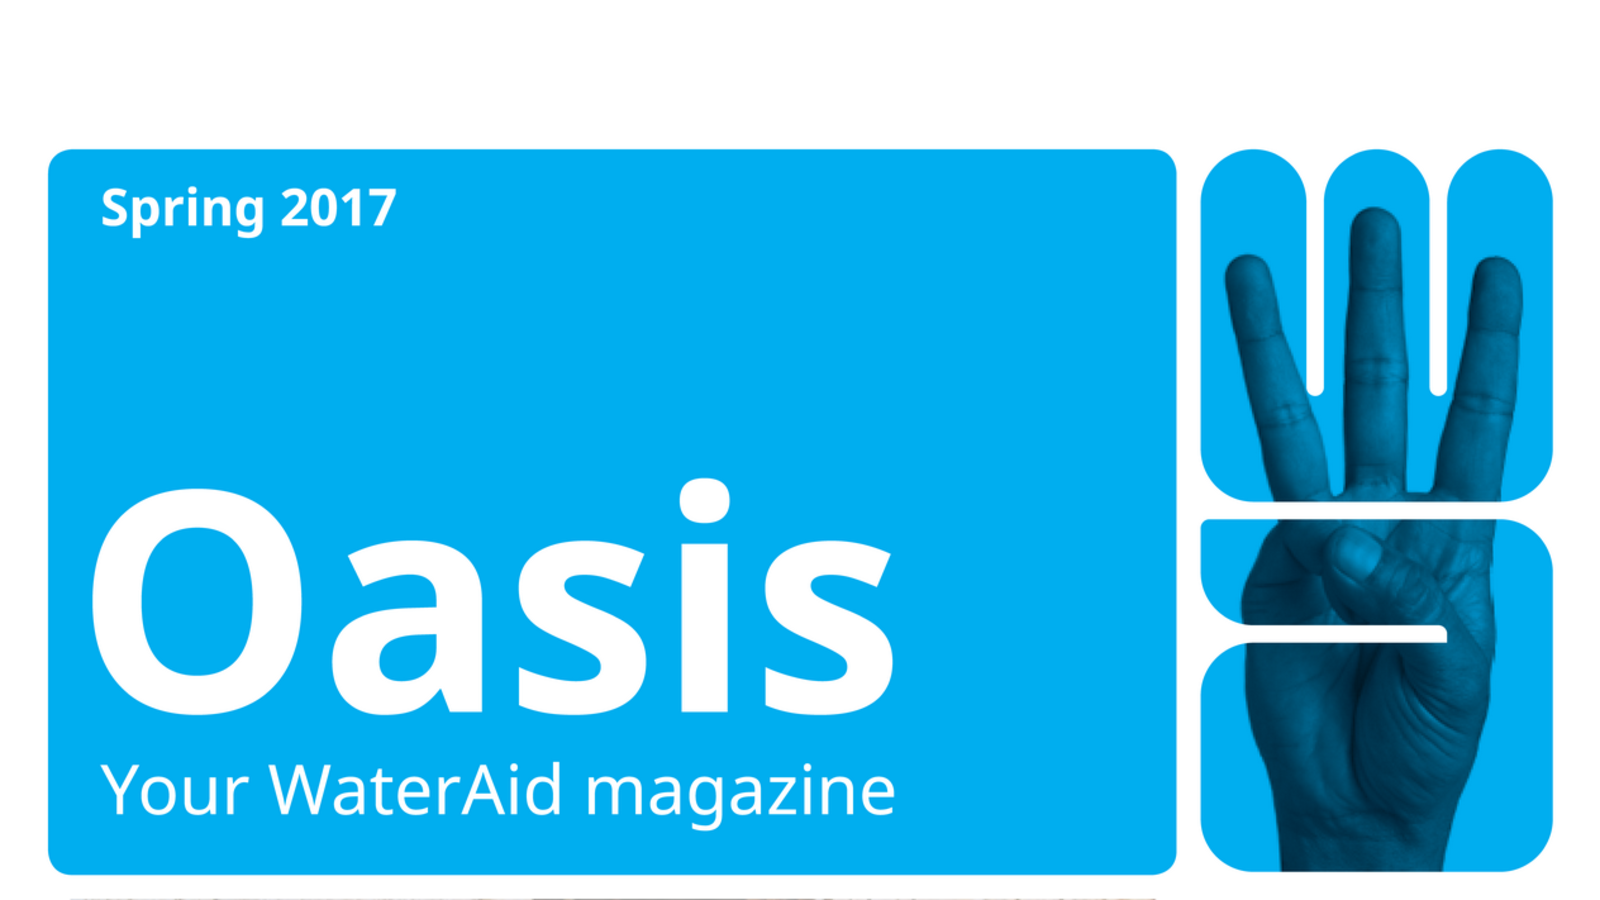 Spring 2017 - Oasis Your WaterAid magazine